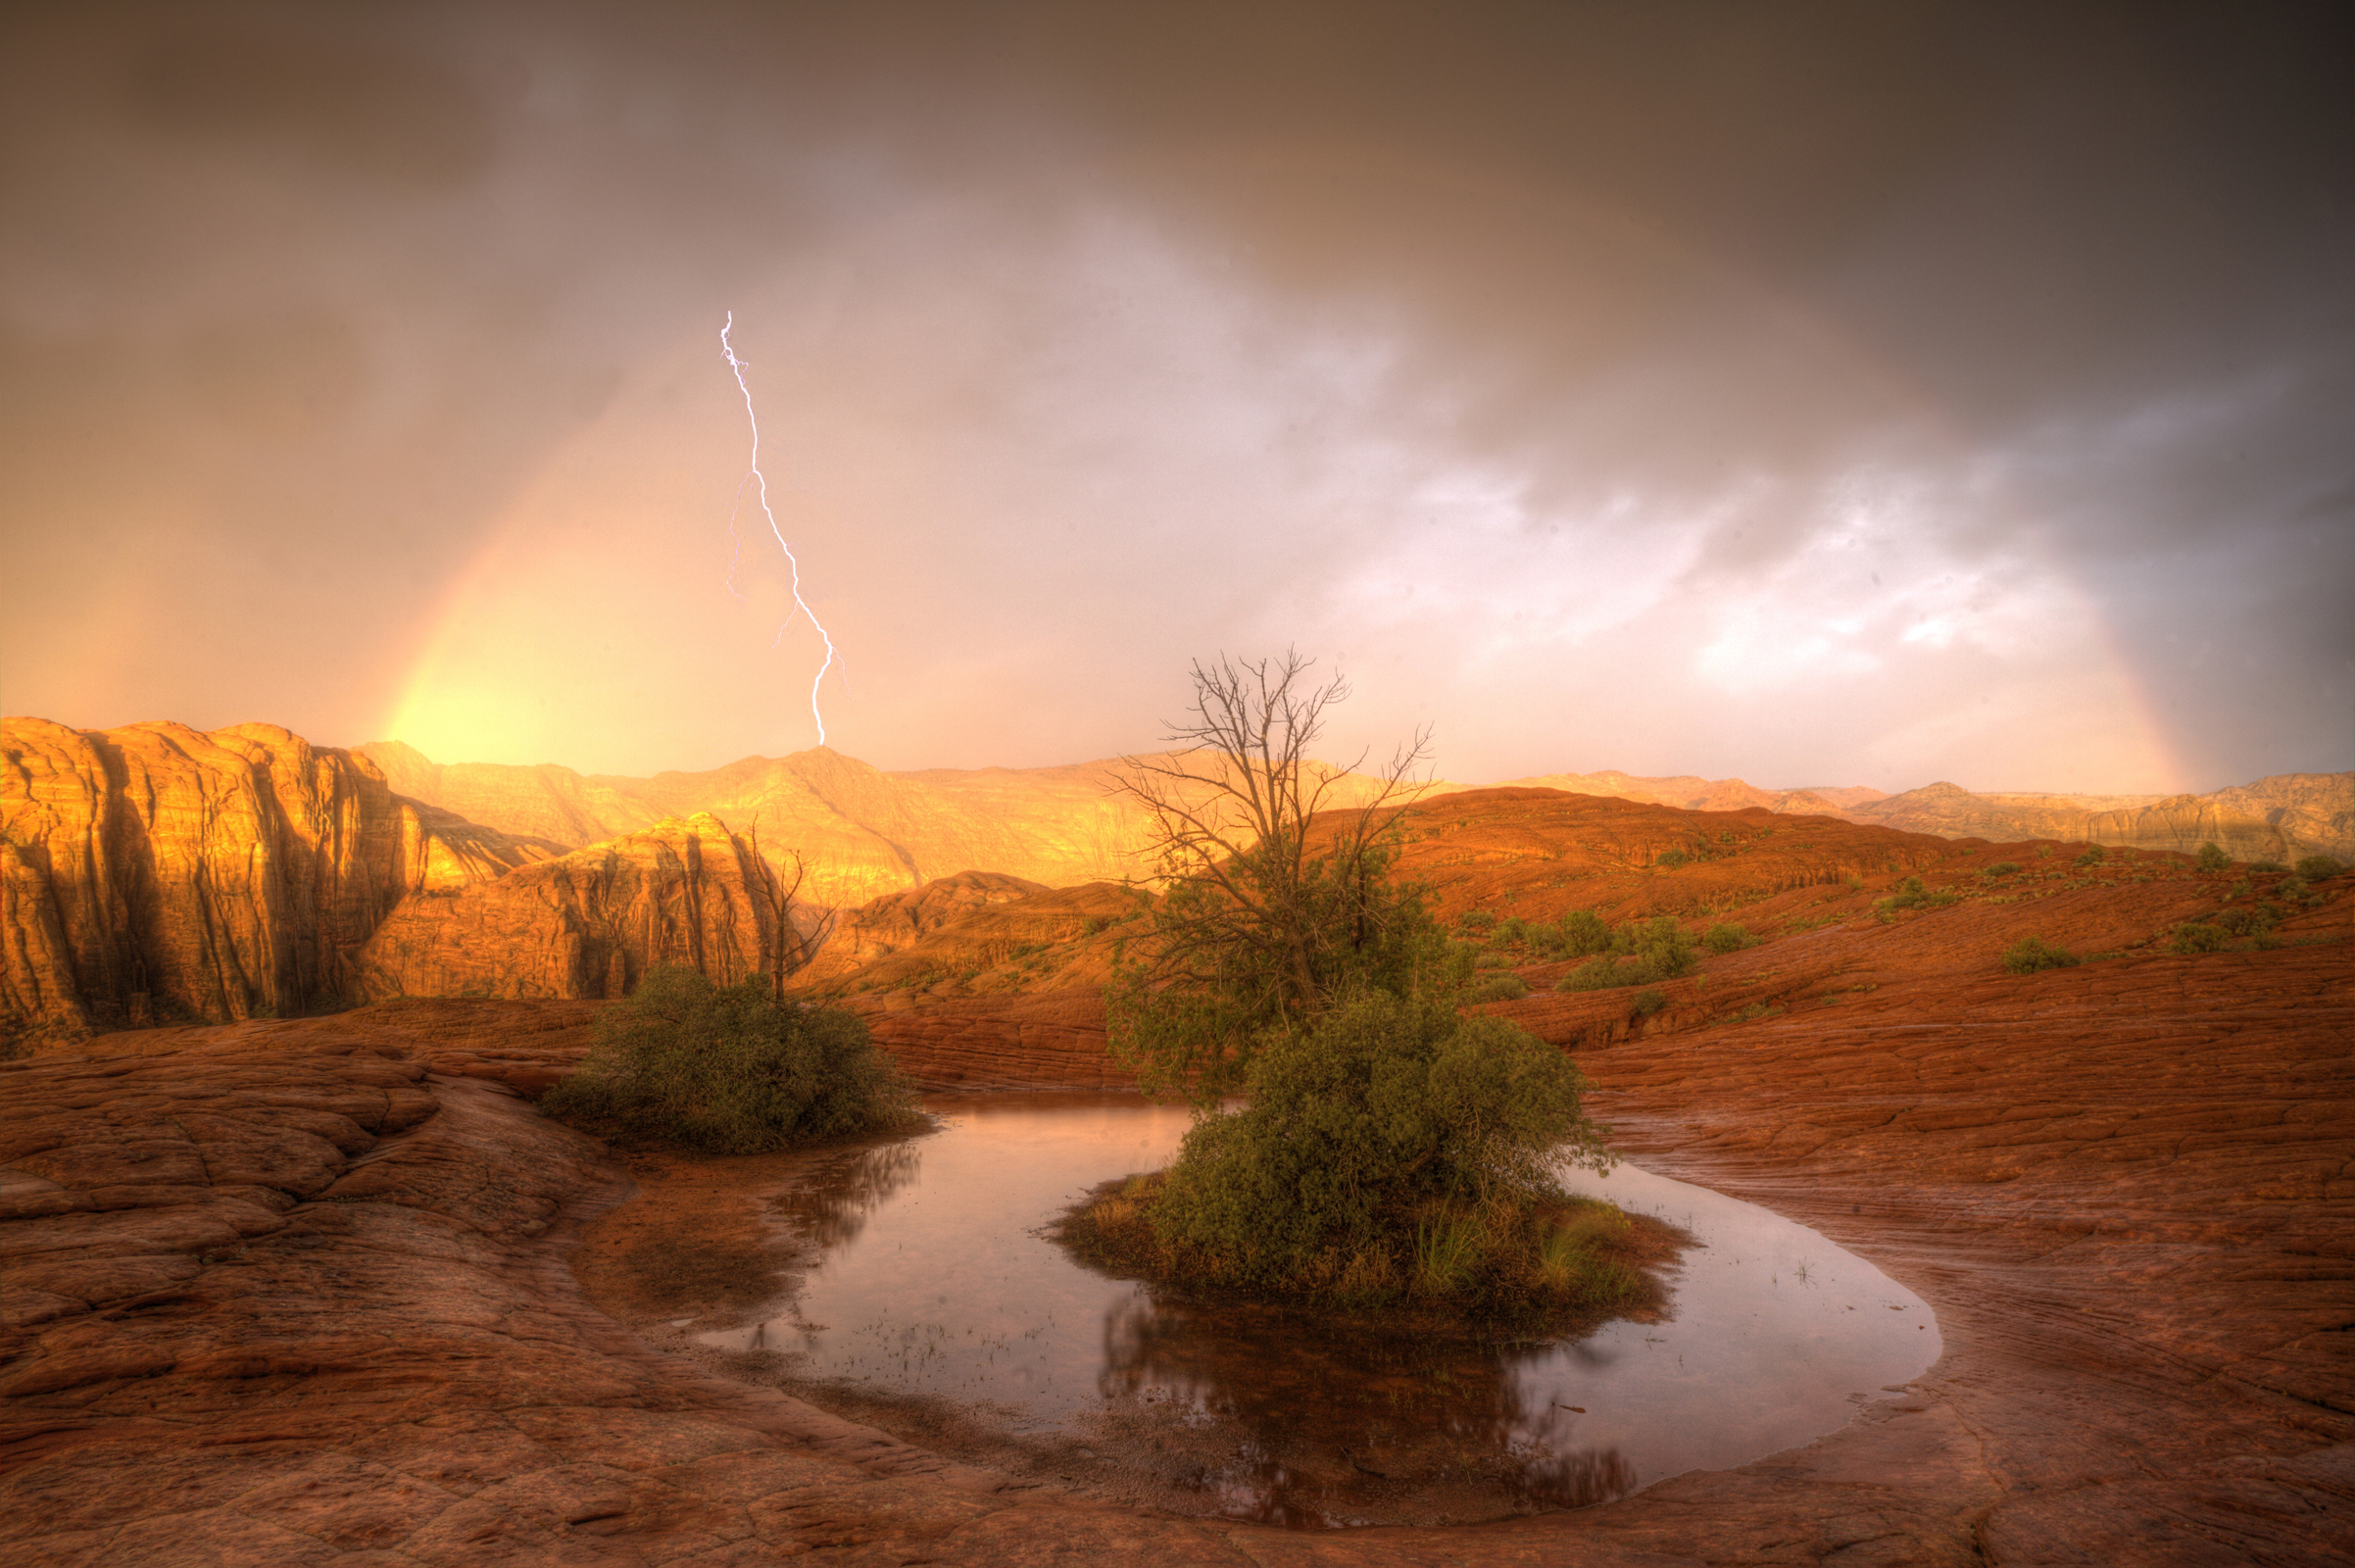 """This photograph titled """"Snow Canyon Glory"""" photograph earned photographer R.J. Hooper a place among nine finalists in Emerging Pro Photo Competition; taken at Snow Canyon State Park, Ivins, Utah, September 2014 